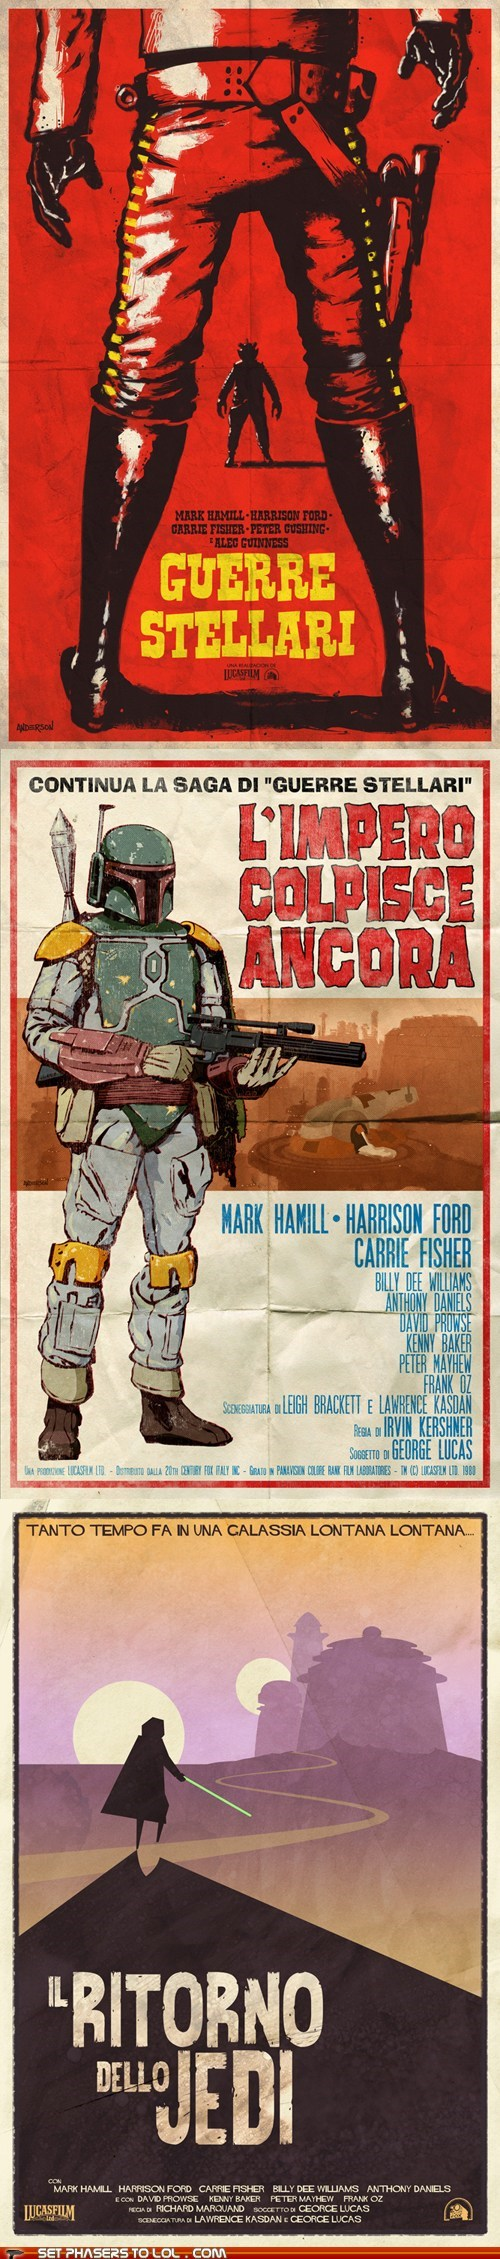 boba fett,italian,poster,return of the jedi,spaghetti western,star wars,The Empire Strikes Back